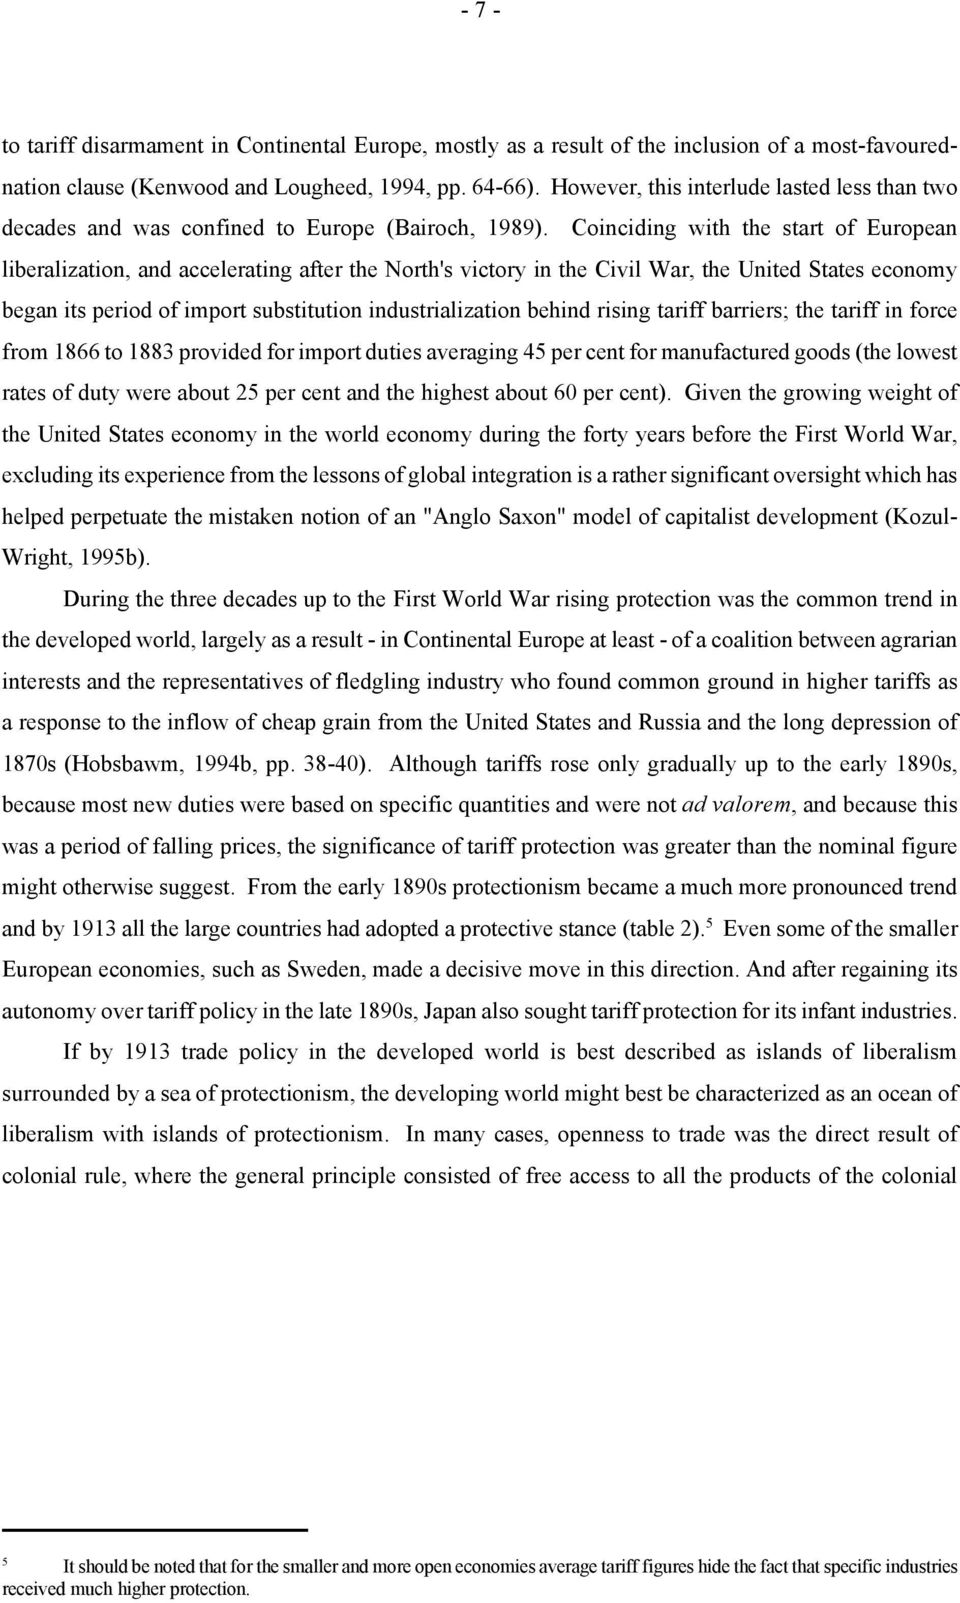 Coinciding with the start of European liberalization, and accelerating after the North's victory in the Civil War, the United States economy began its period of import substitution industrialization